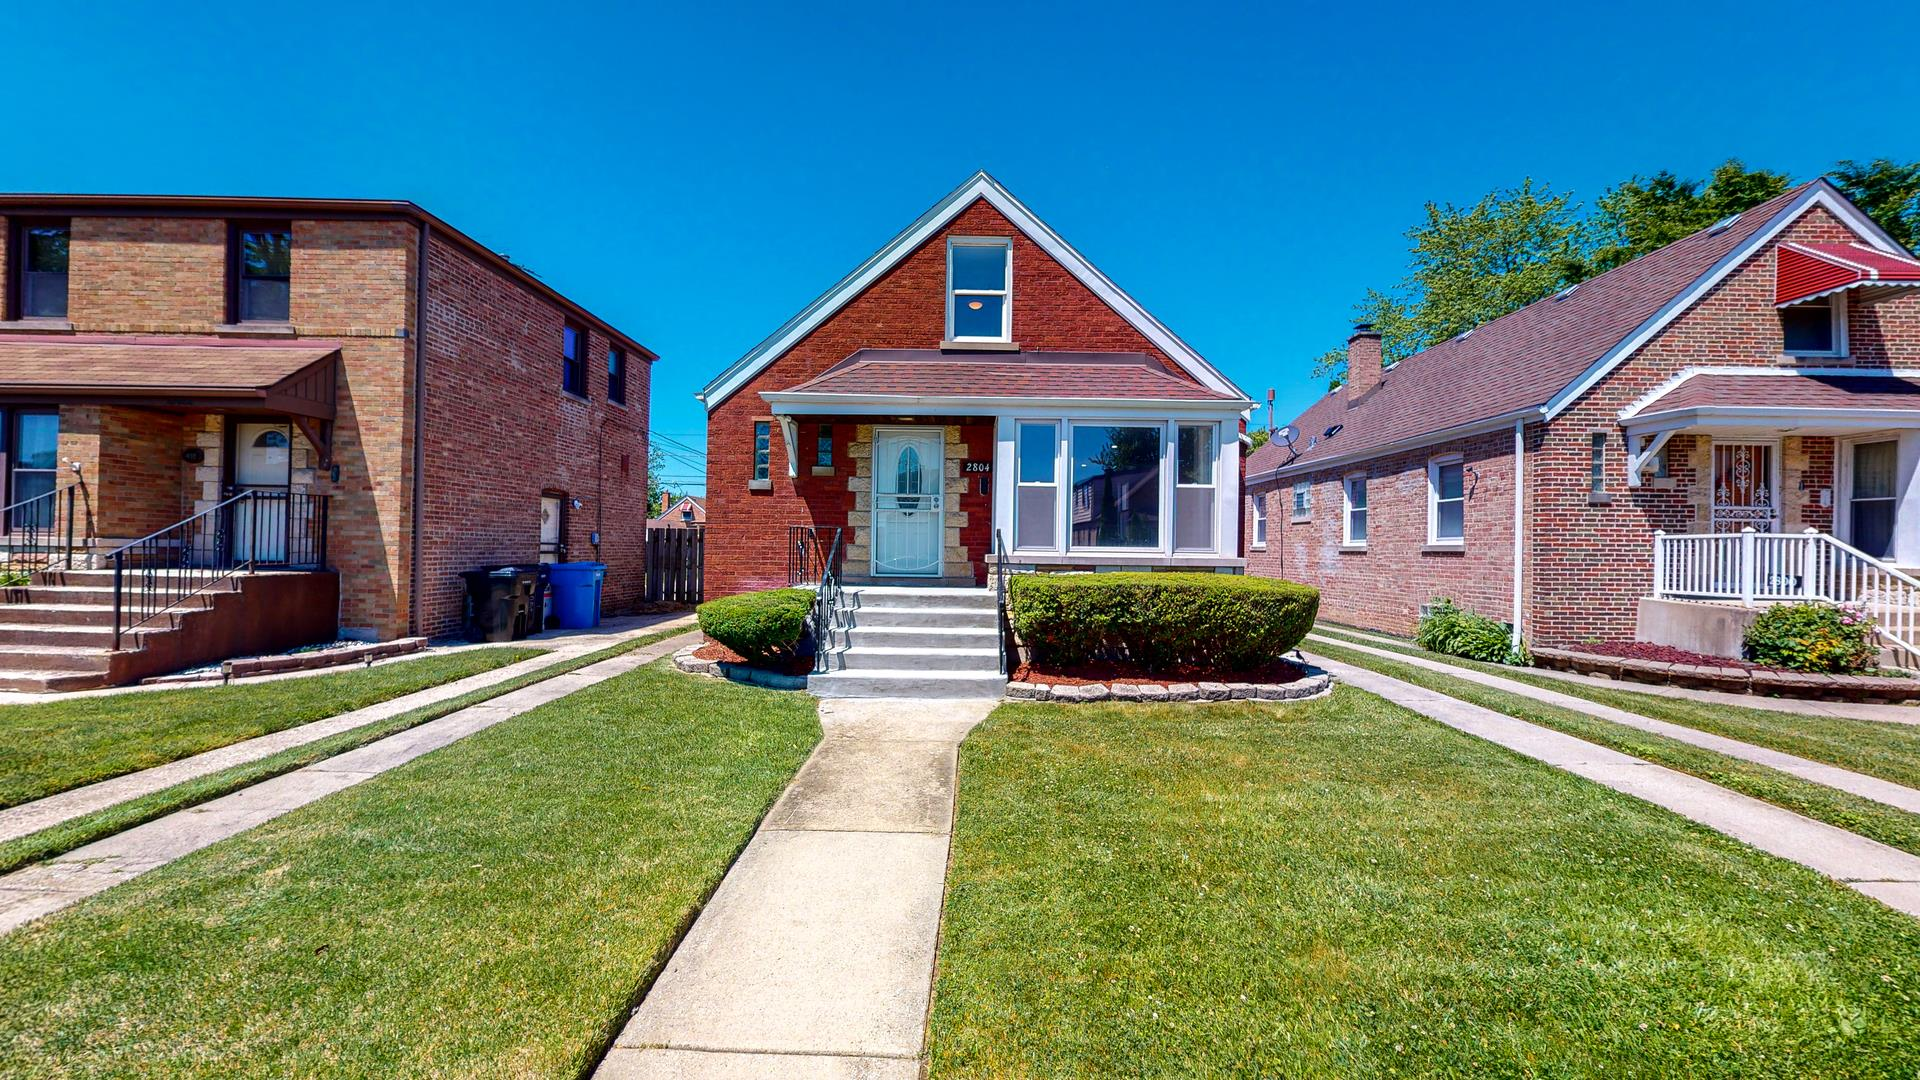 2804 W 85TH Place, Chicago, IL 60652 - #: 10861066